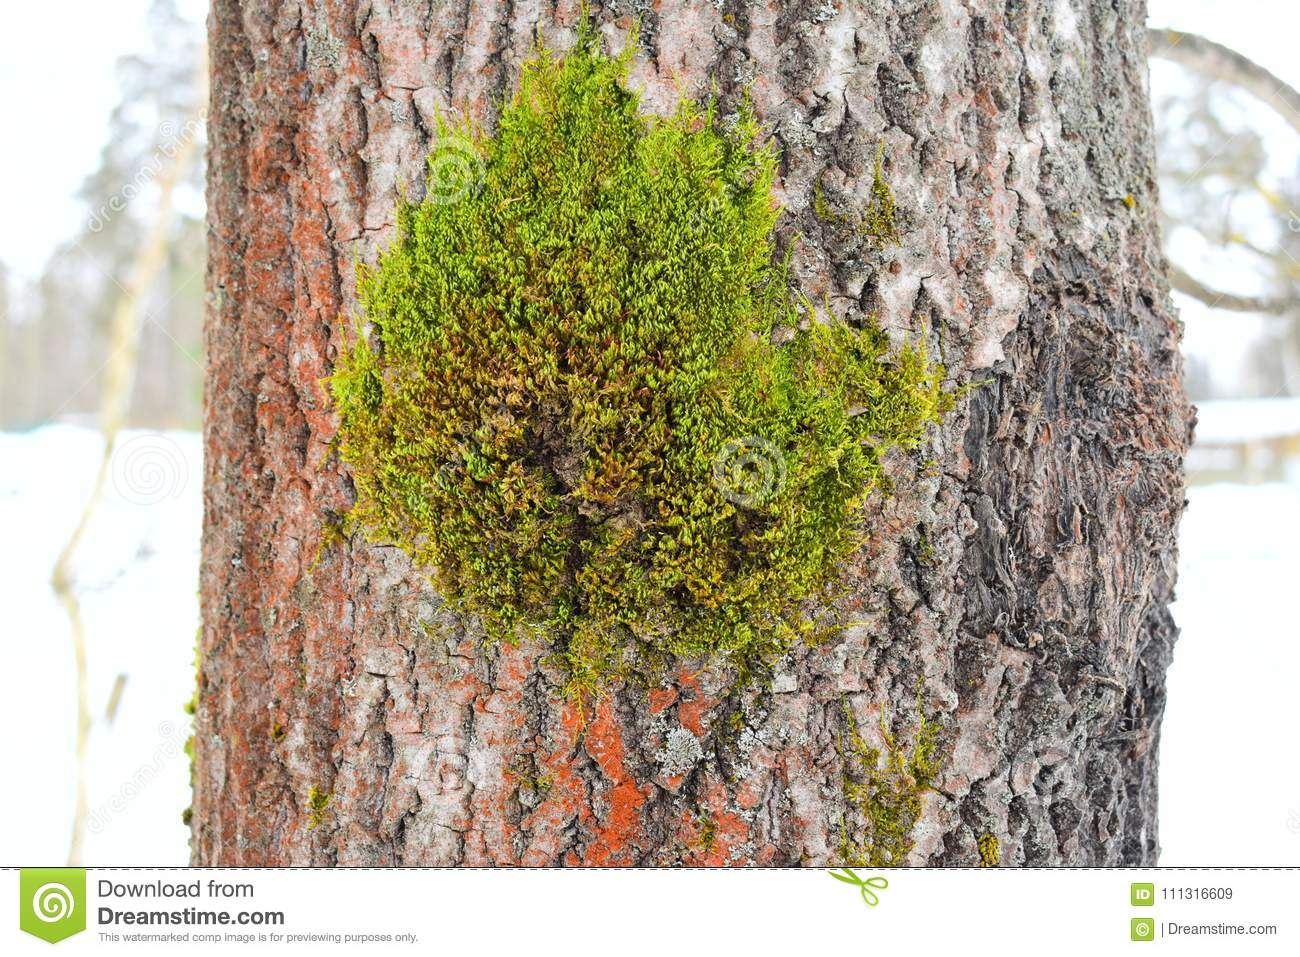 There Are Variations In Growth Types In A Single Lichen